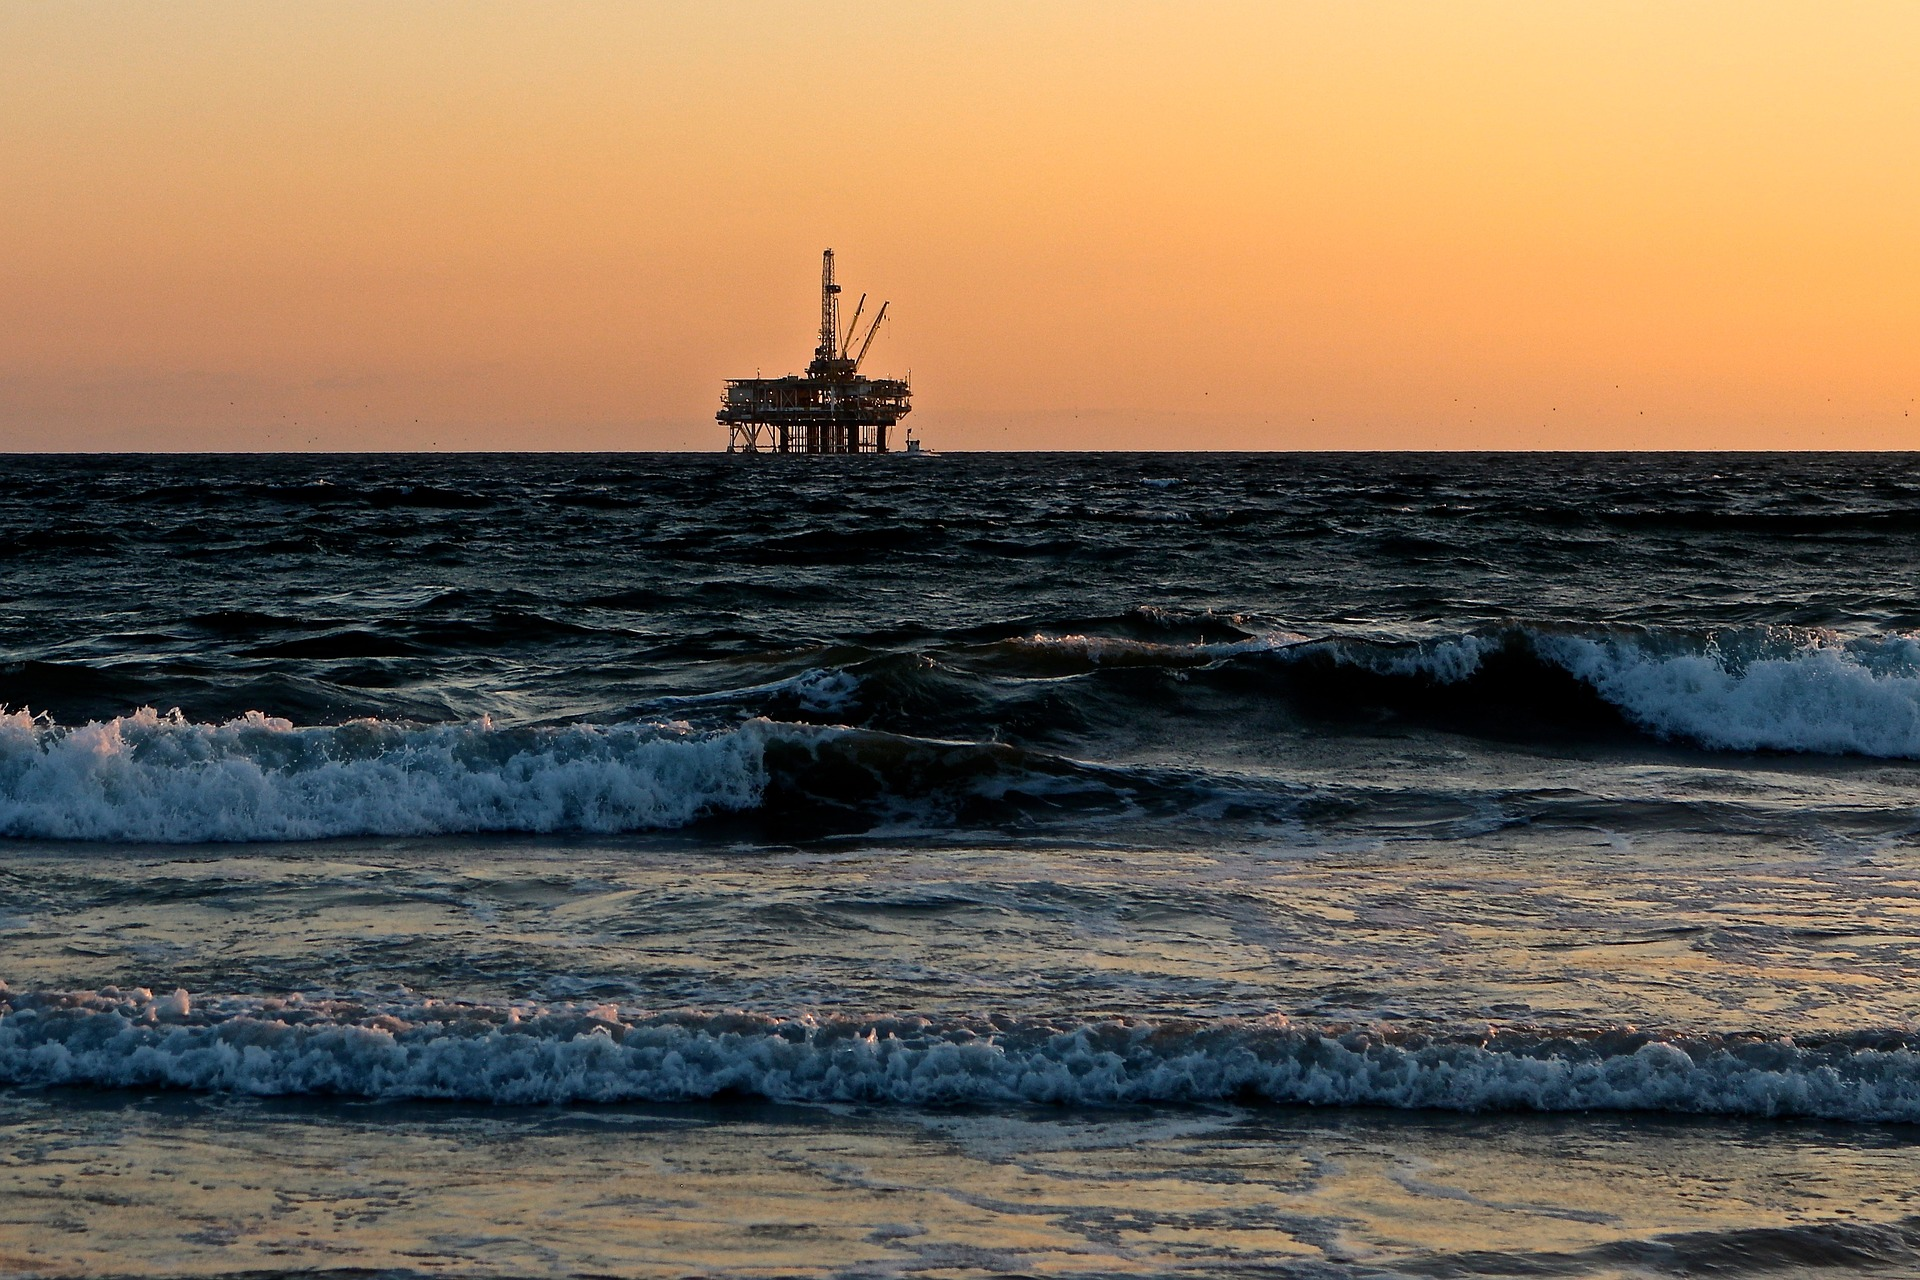 Exxon had suppressed scientific data over a period of more than 40 years to continue profiting from its operations in the Beaufort Sea. Representative image. Credit: catmoz/pixabay